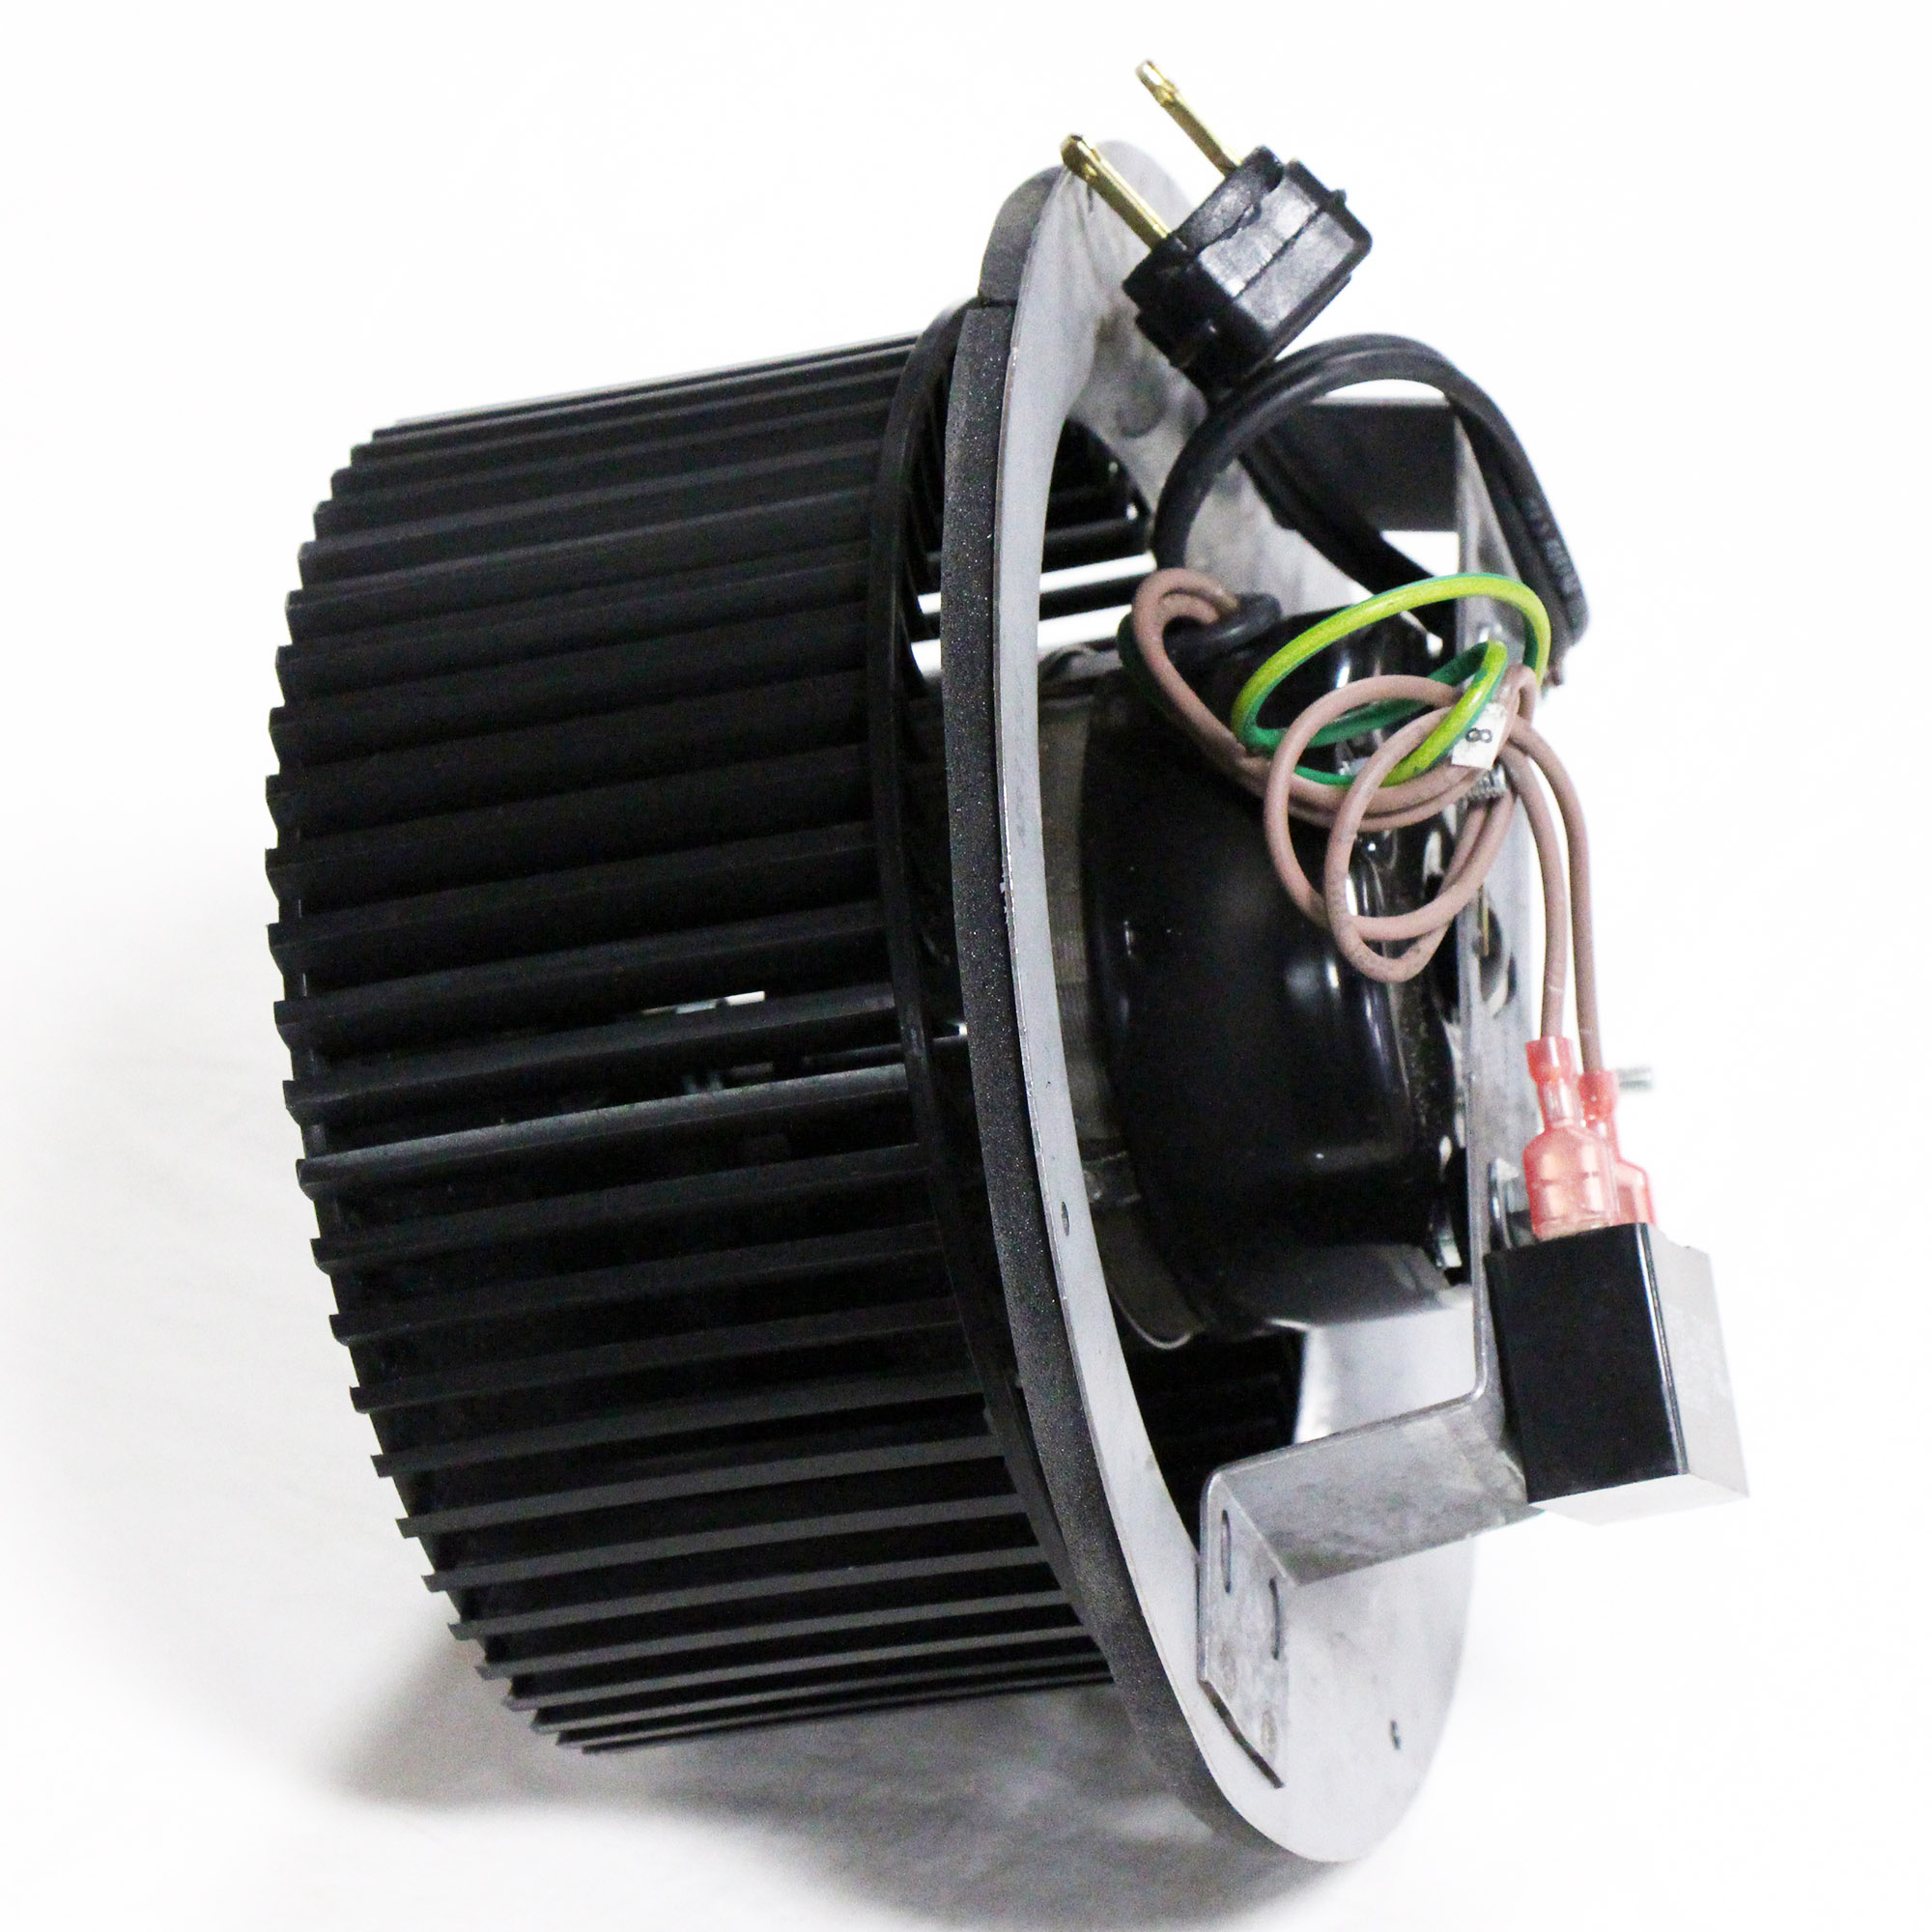 Reversomatic Bathroom Ventilation Exhaust Fan Motor,Blade ...